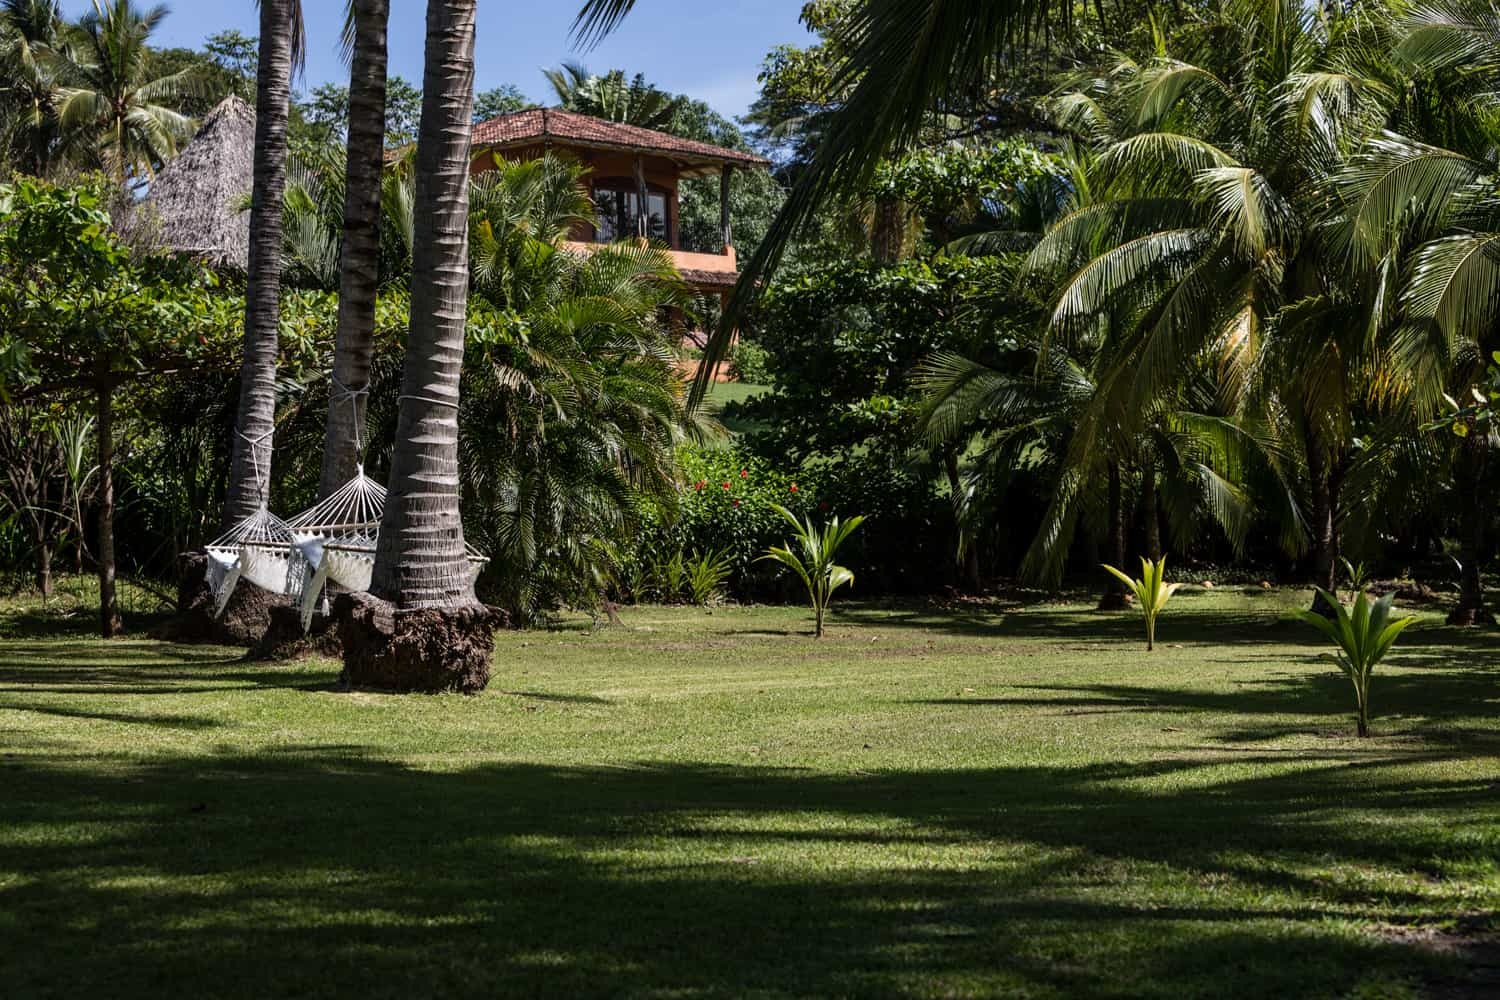 Lush, green lawn adorned with palm trees is great place to tie the knot.